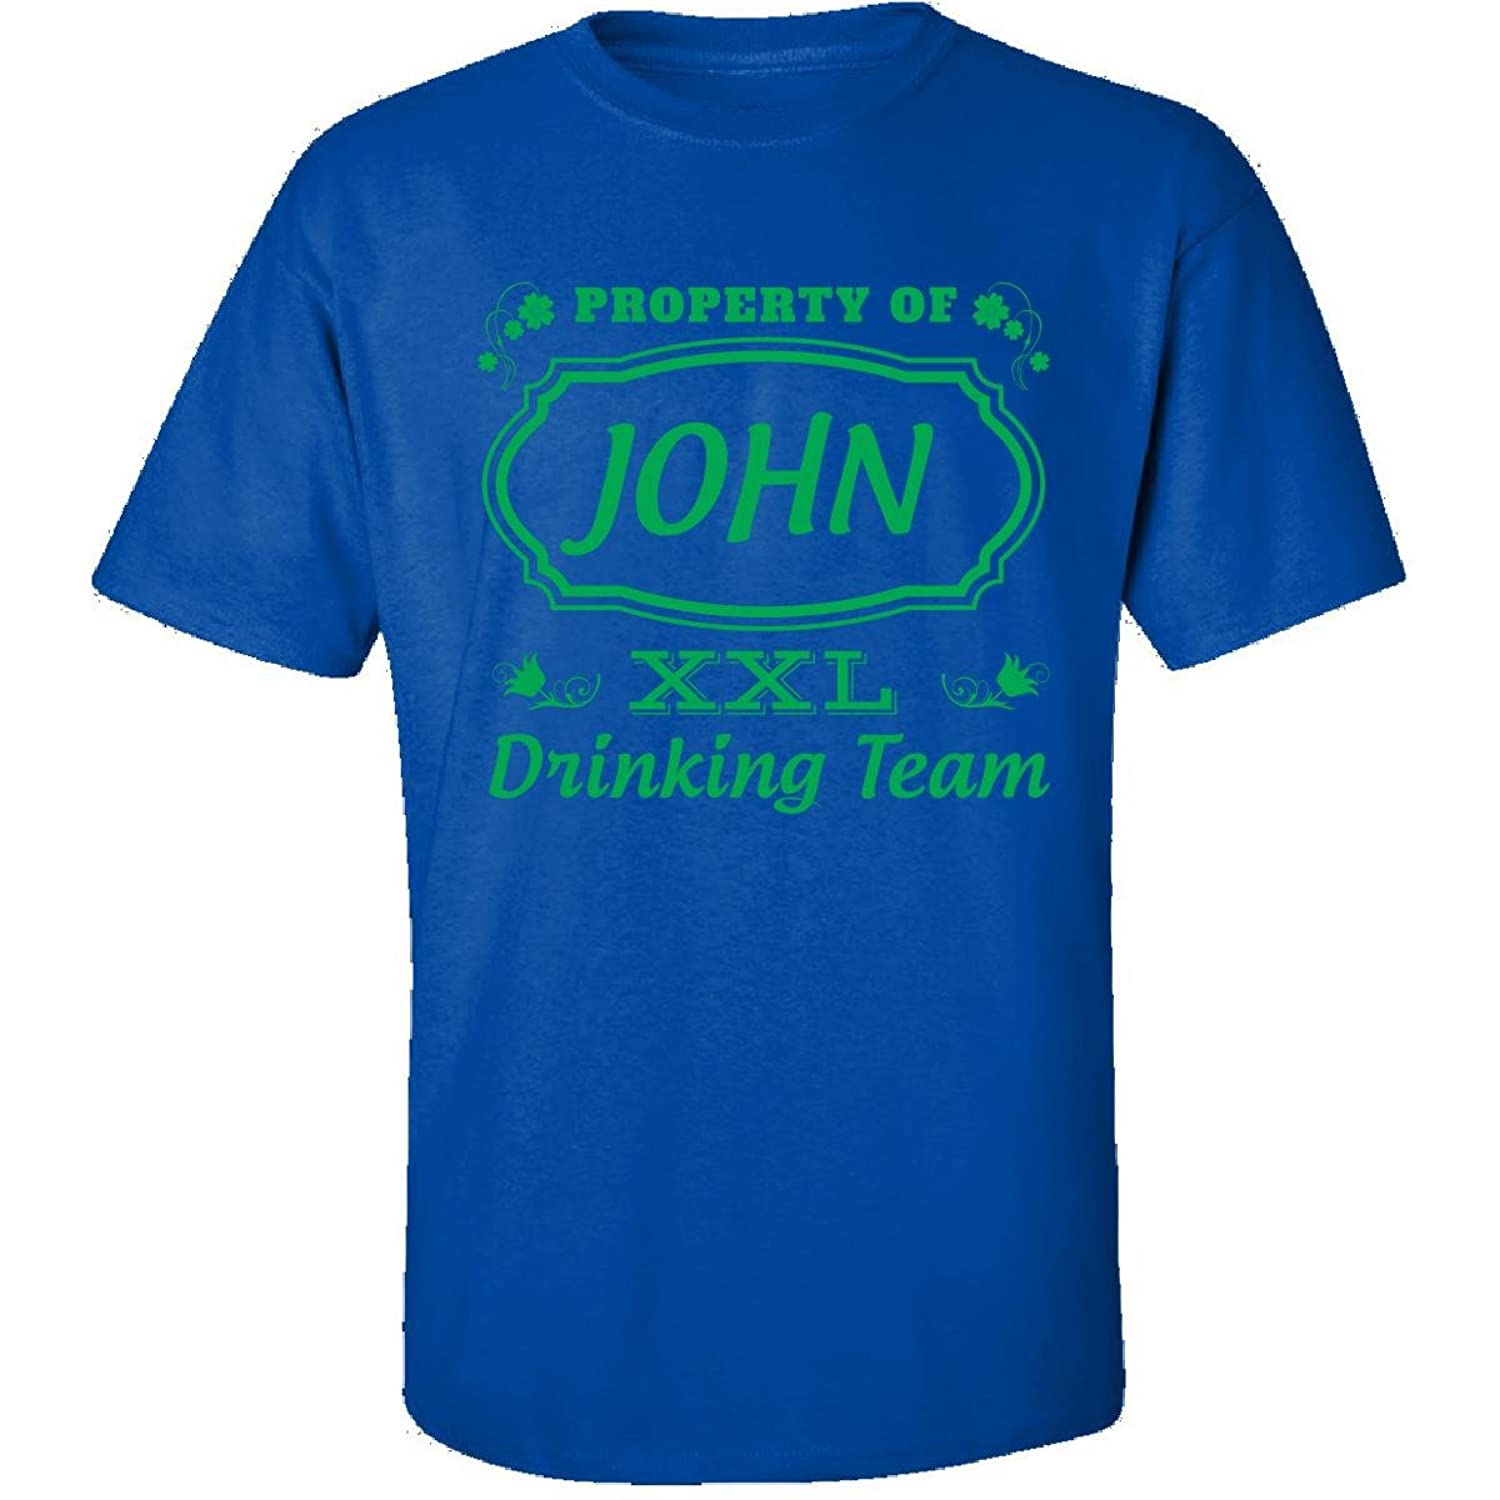 Property Of John St Patrick Day Beer Drinking Team - Adult Shirt